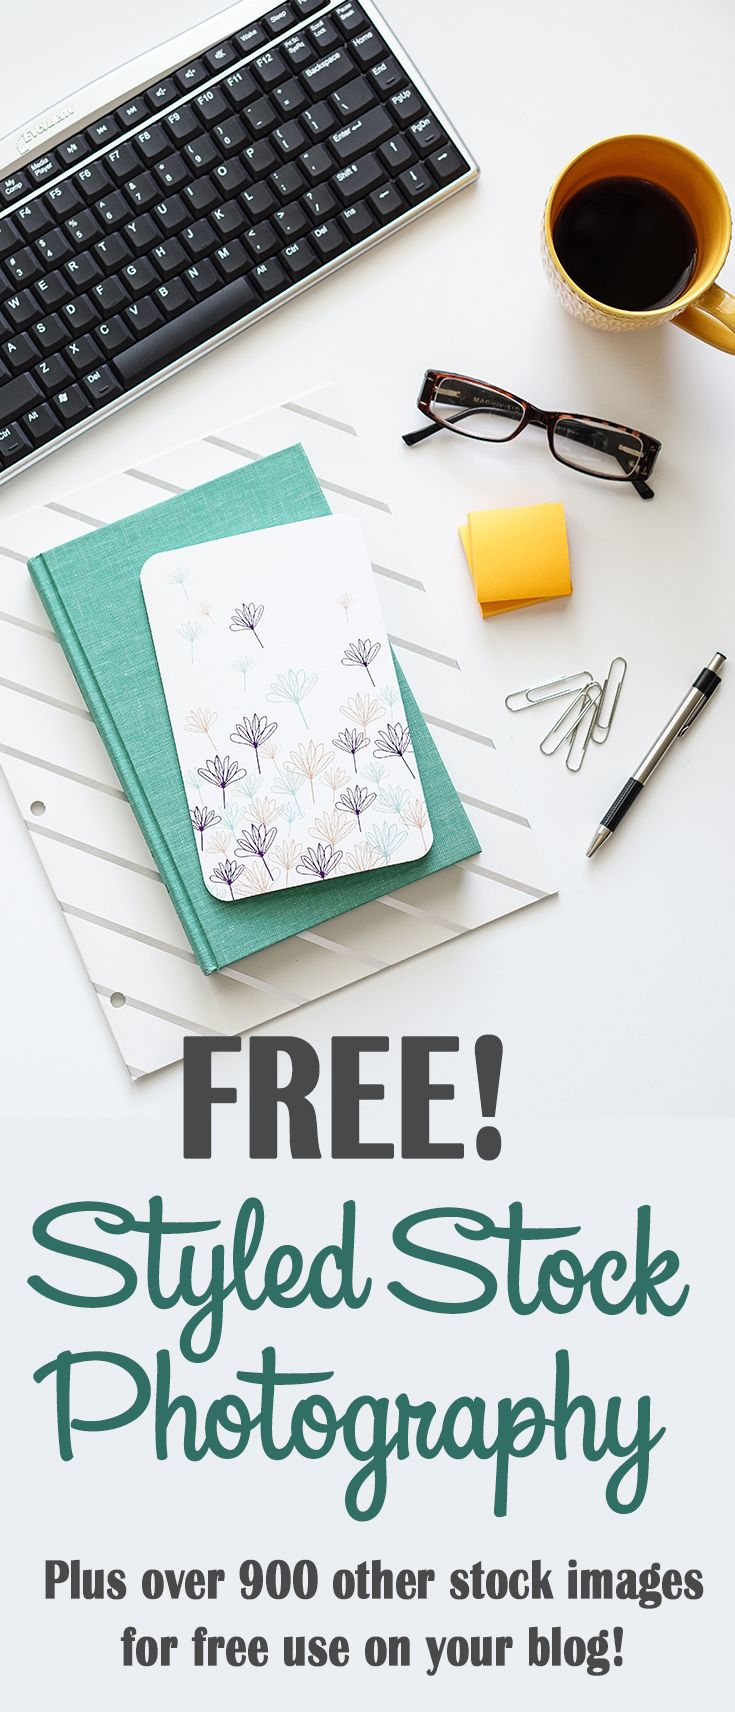 Site to search 900+ Free Stock Photos by keyword and get what you need for your blog post!  Blogging Tips | Social Media Marketing